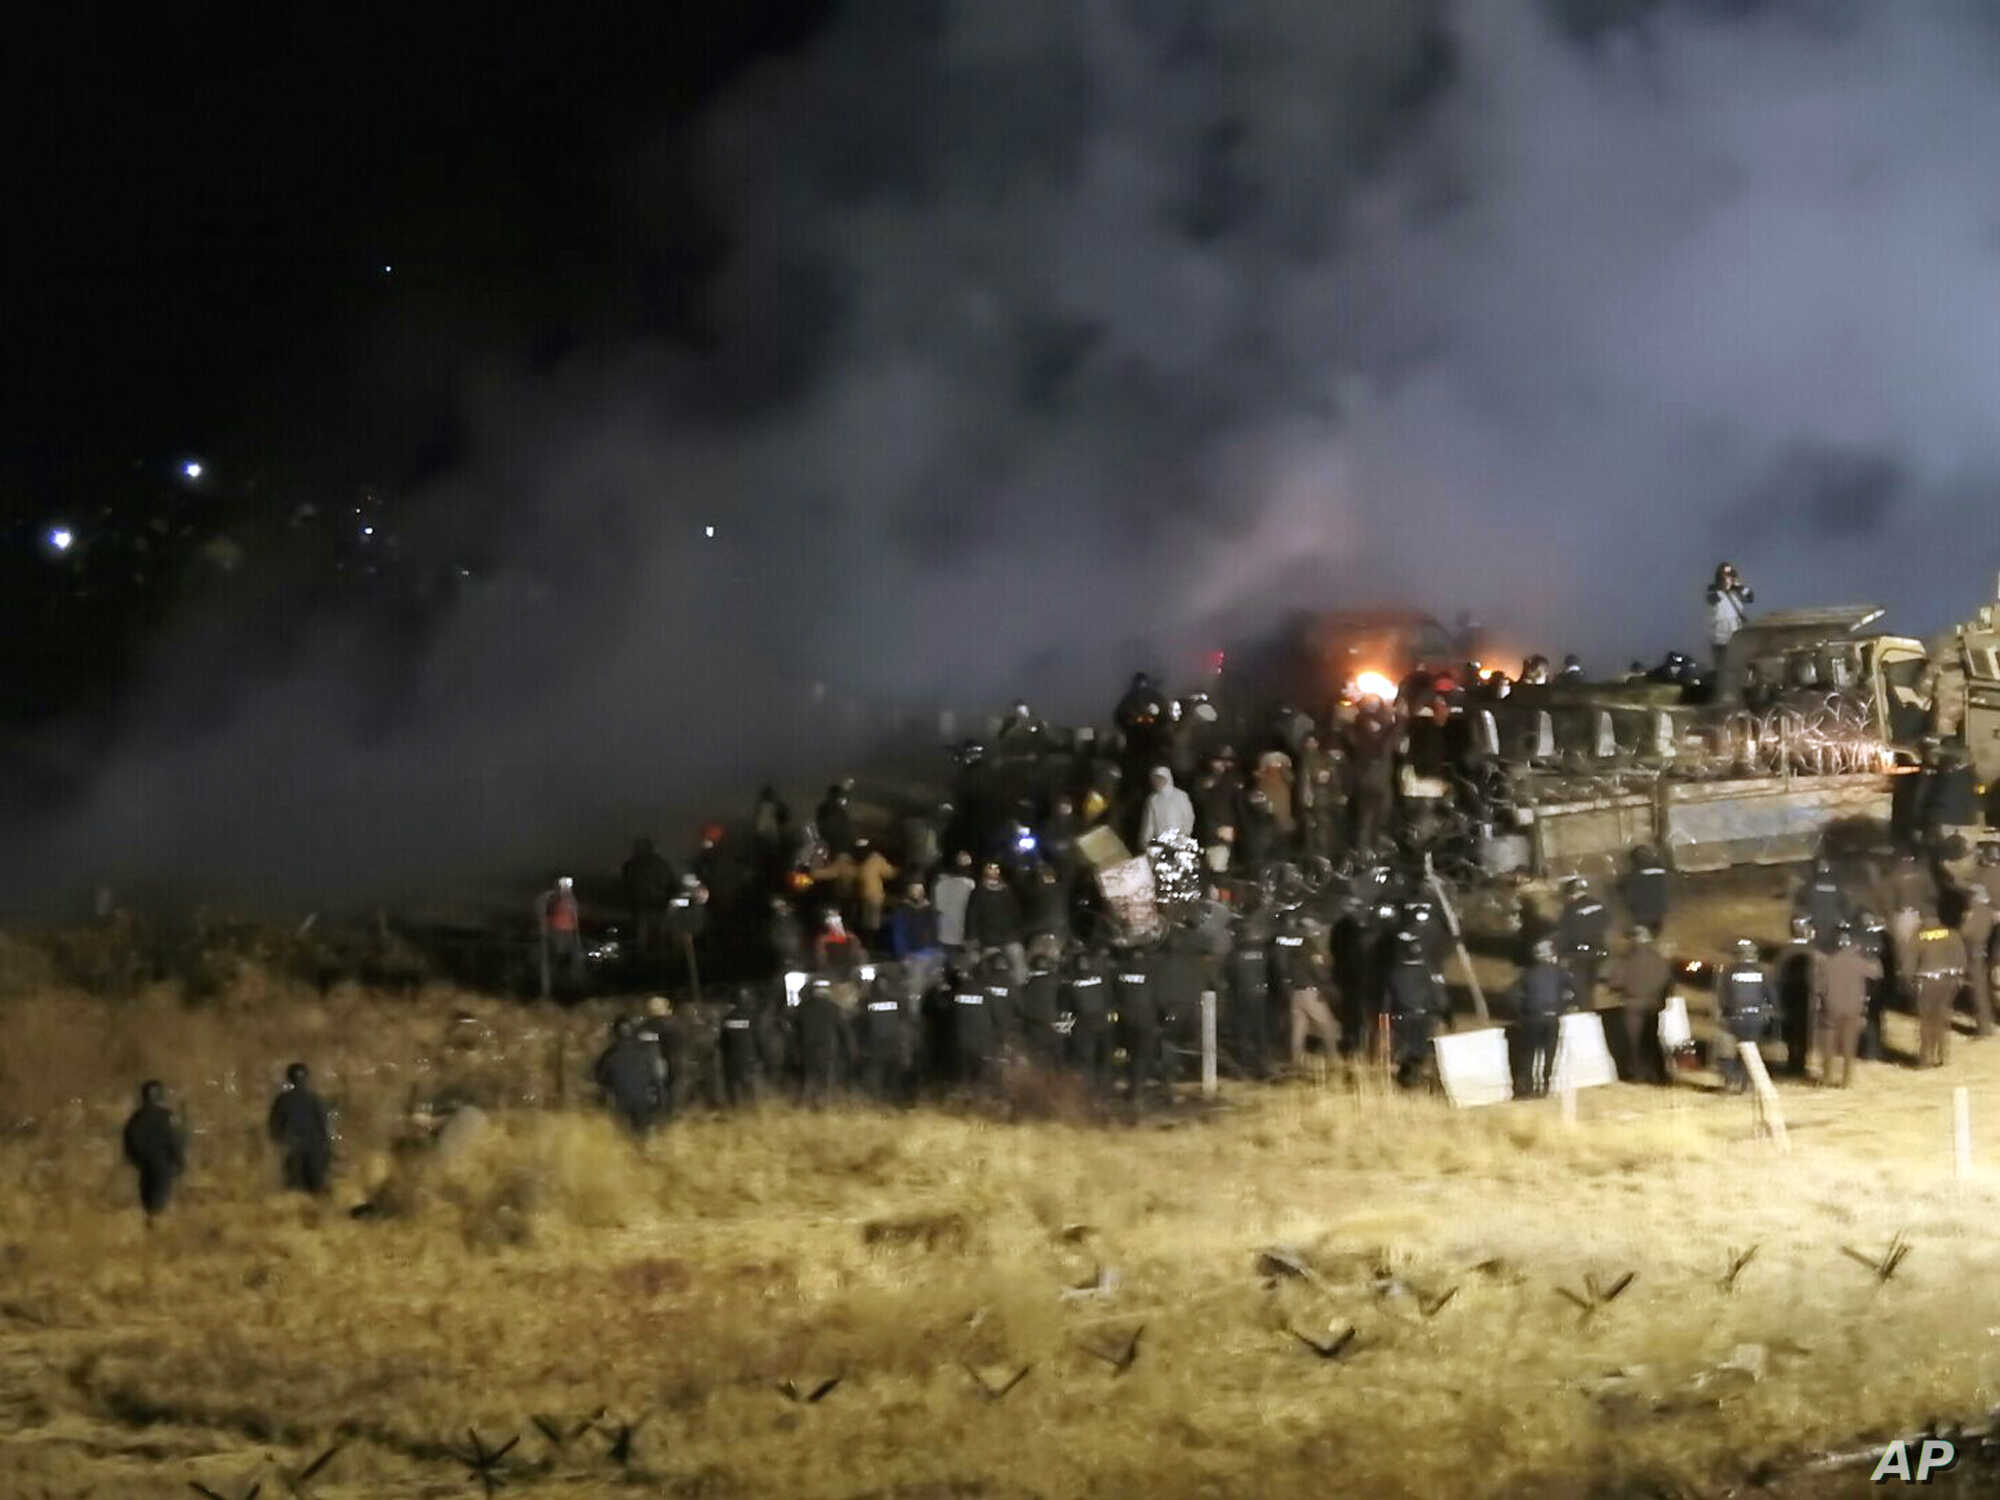 FILE - In this Nov. 20, 2016 file photo, provided by Morton County Sheriff's Department, law enforcement and protesters clash near the site of the Dakota Access pipeline in Cannon Ball, N.D.